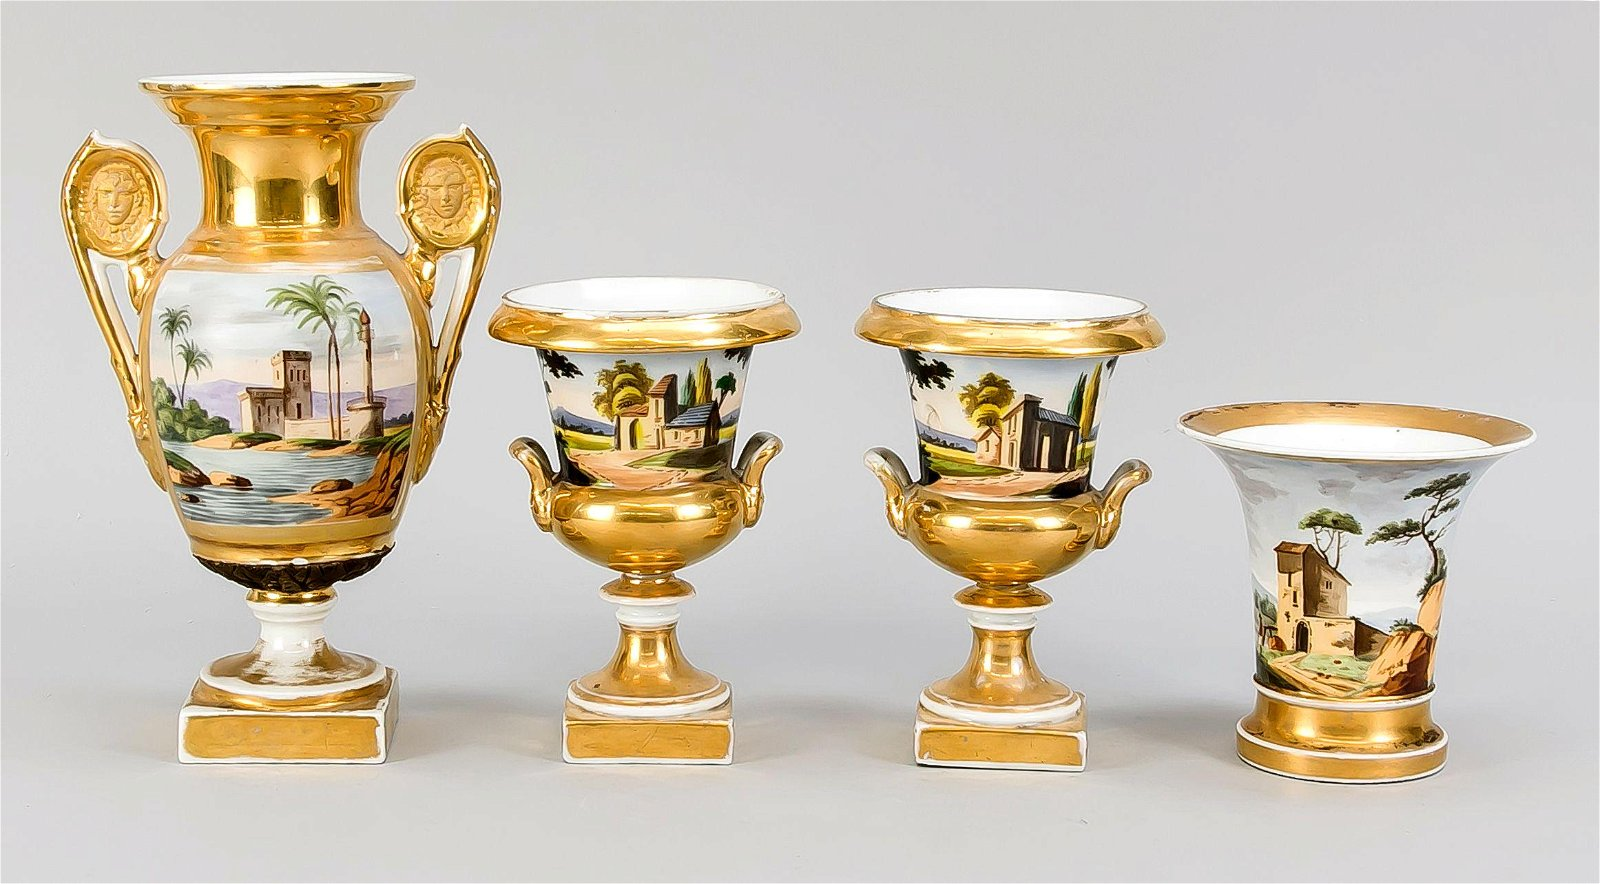 Four small vases, France,